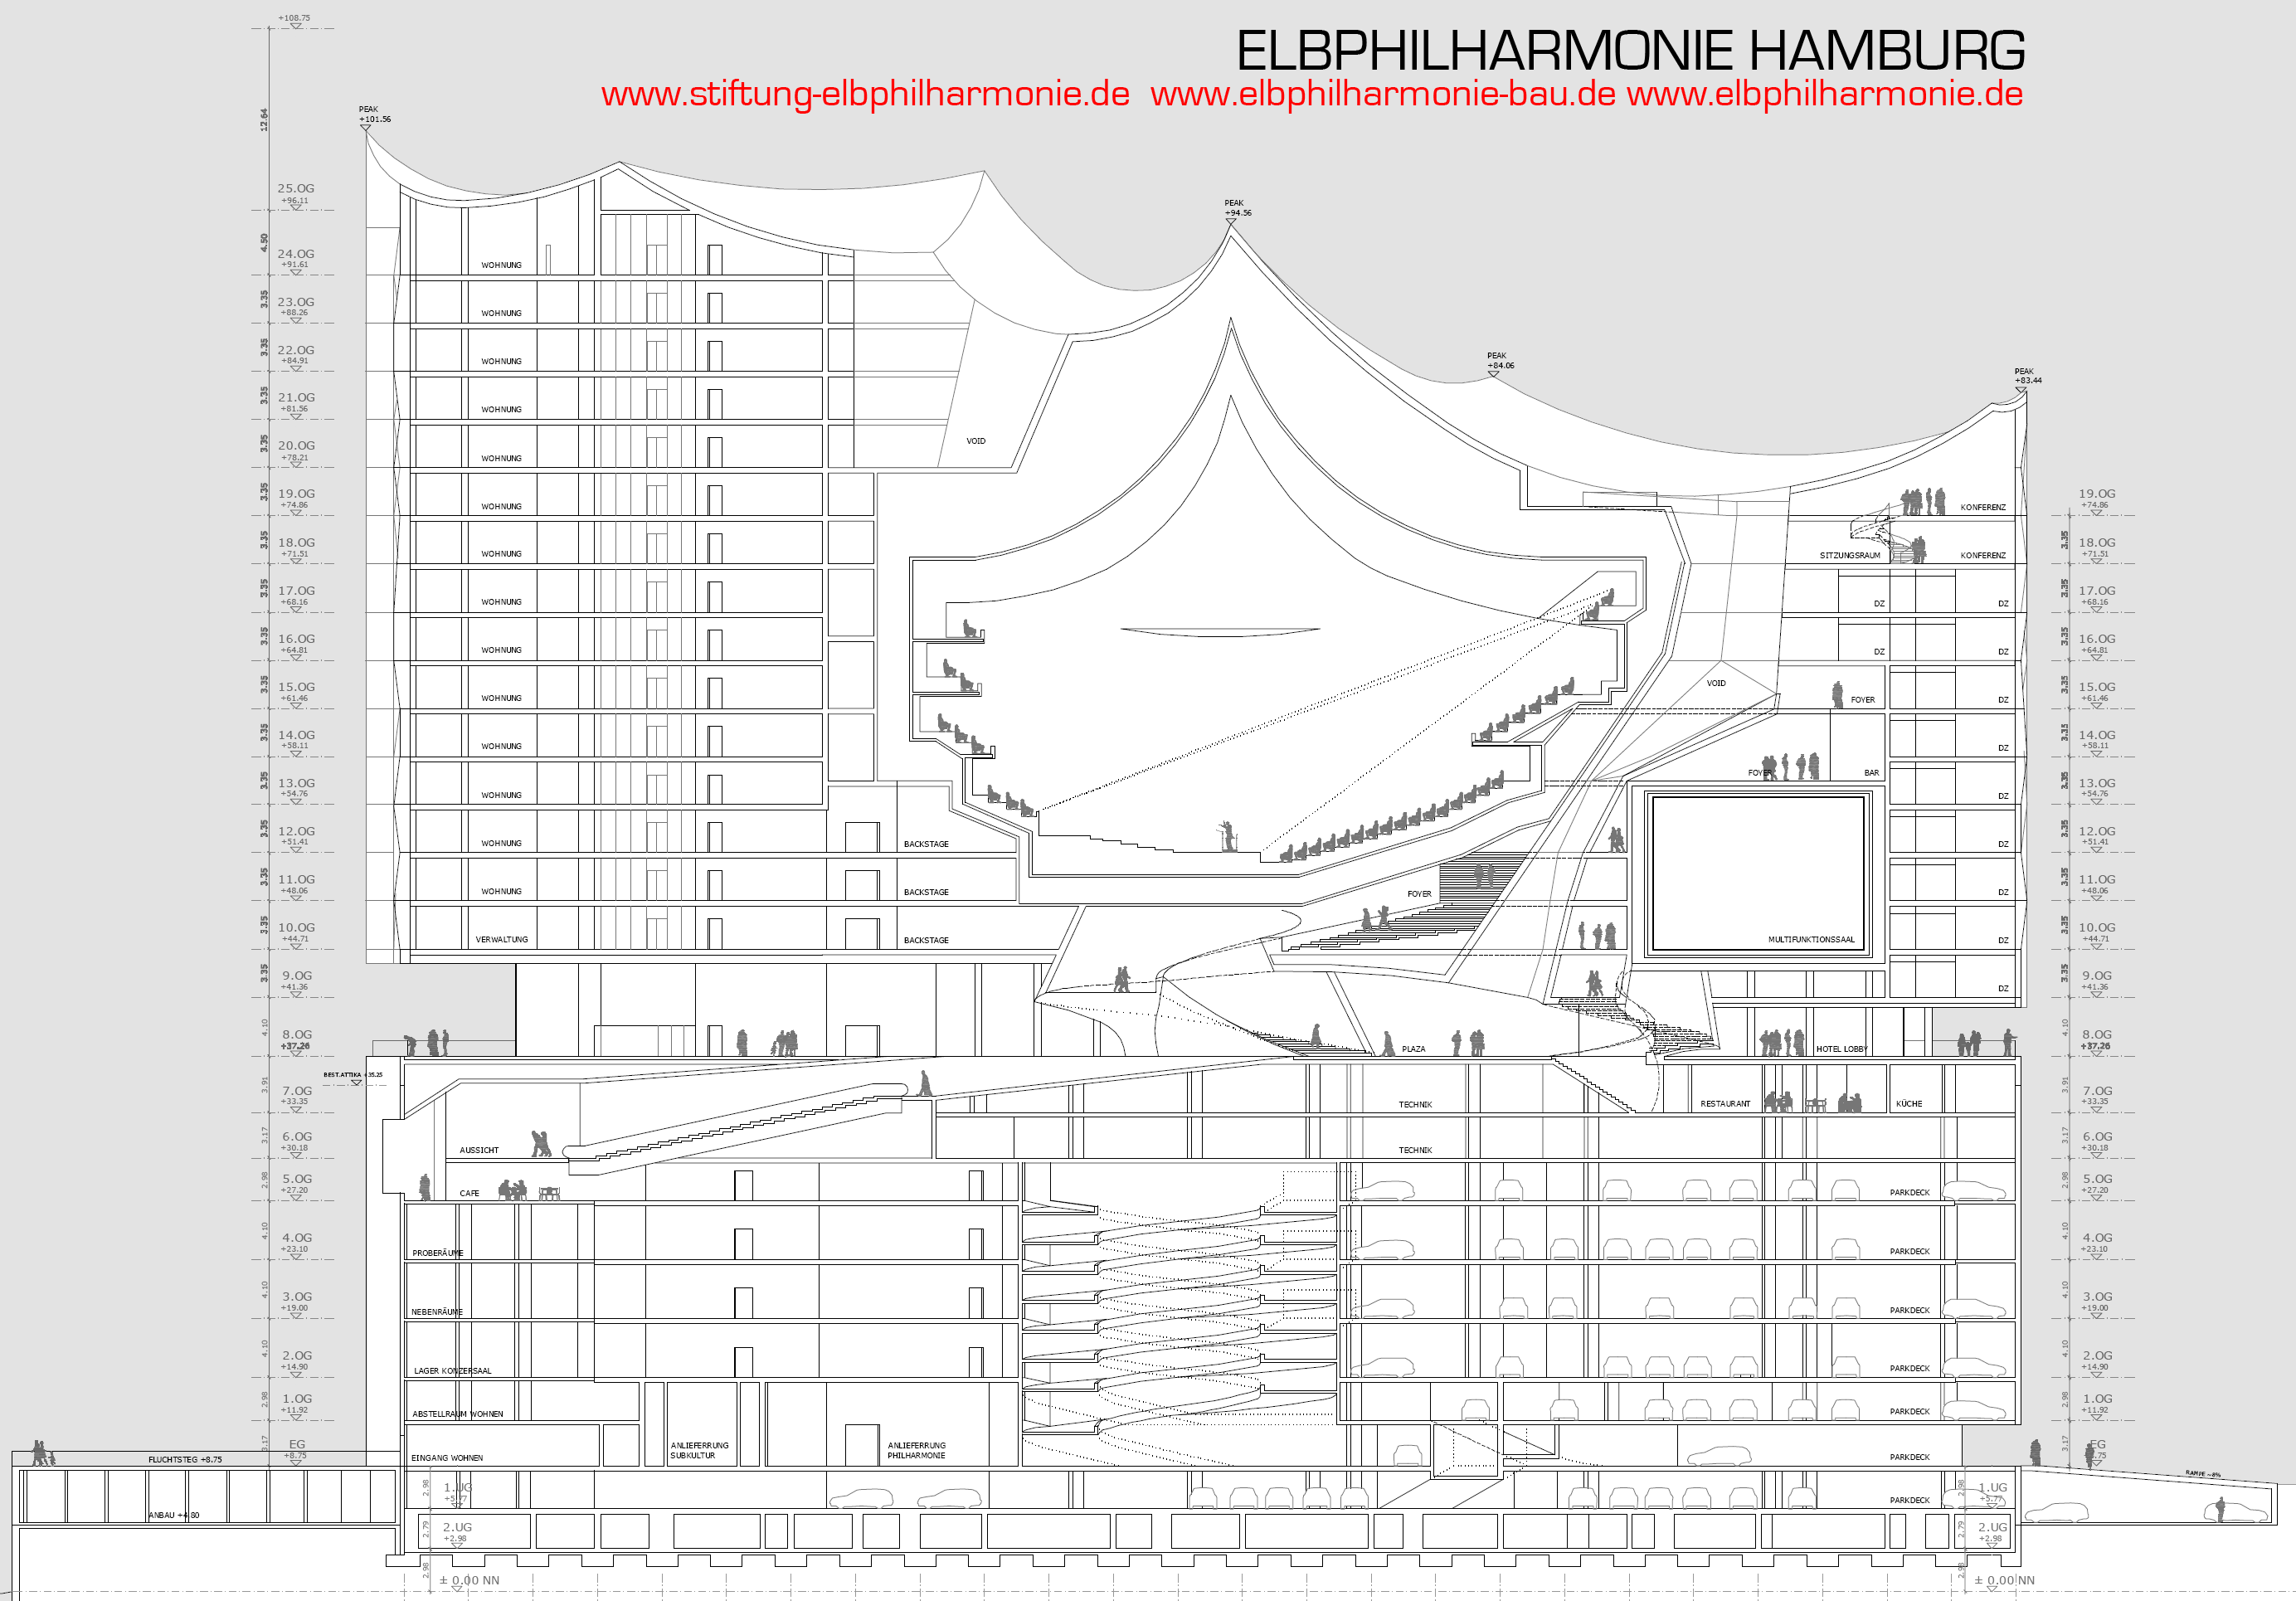 Architectural Plans Concert Hall Hamburg Diagram Architecture Herzog